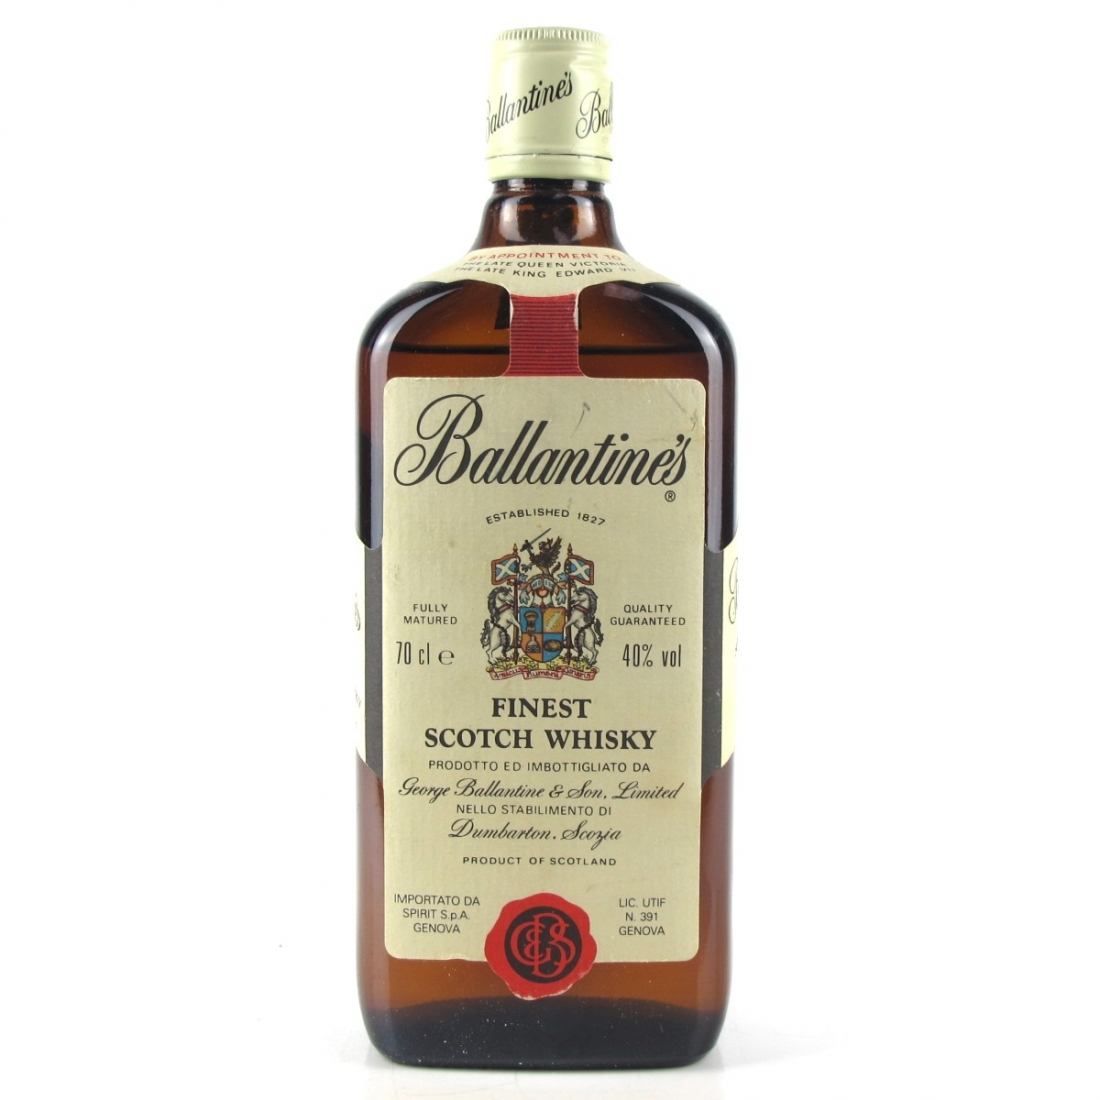 Ballantine's Finest Scotch / Spirit Import